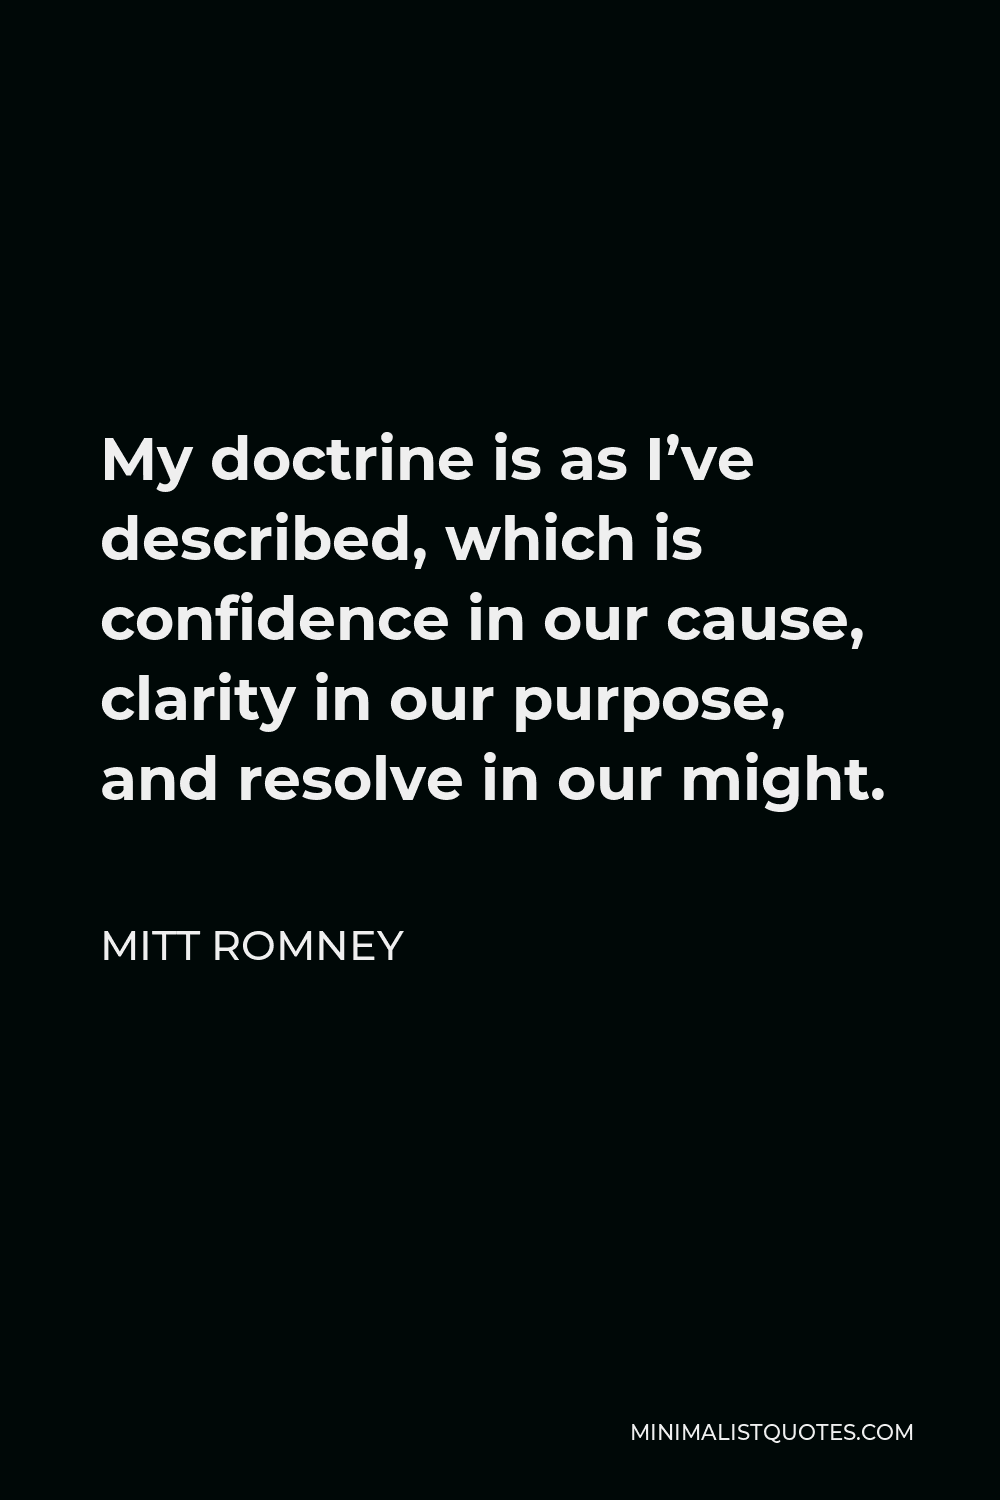 Mitt Romney Quote - My doctrine is as I've described, which is confidence in our cause, clarity in our purpose, and resolve in our might.